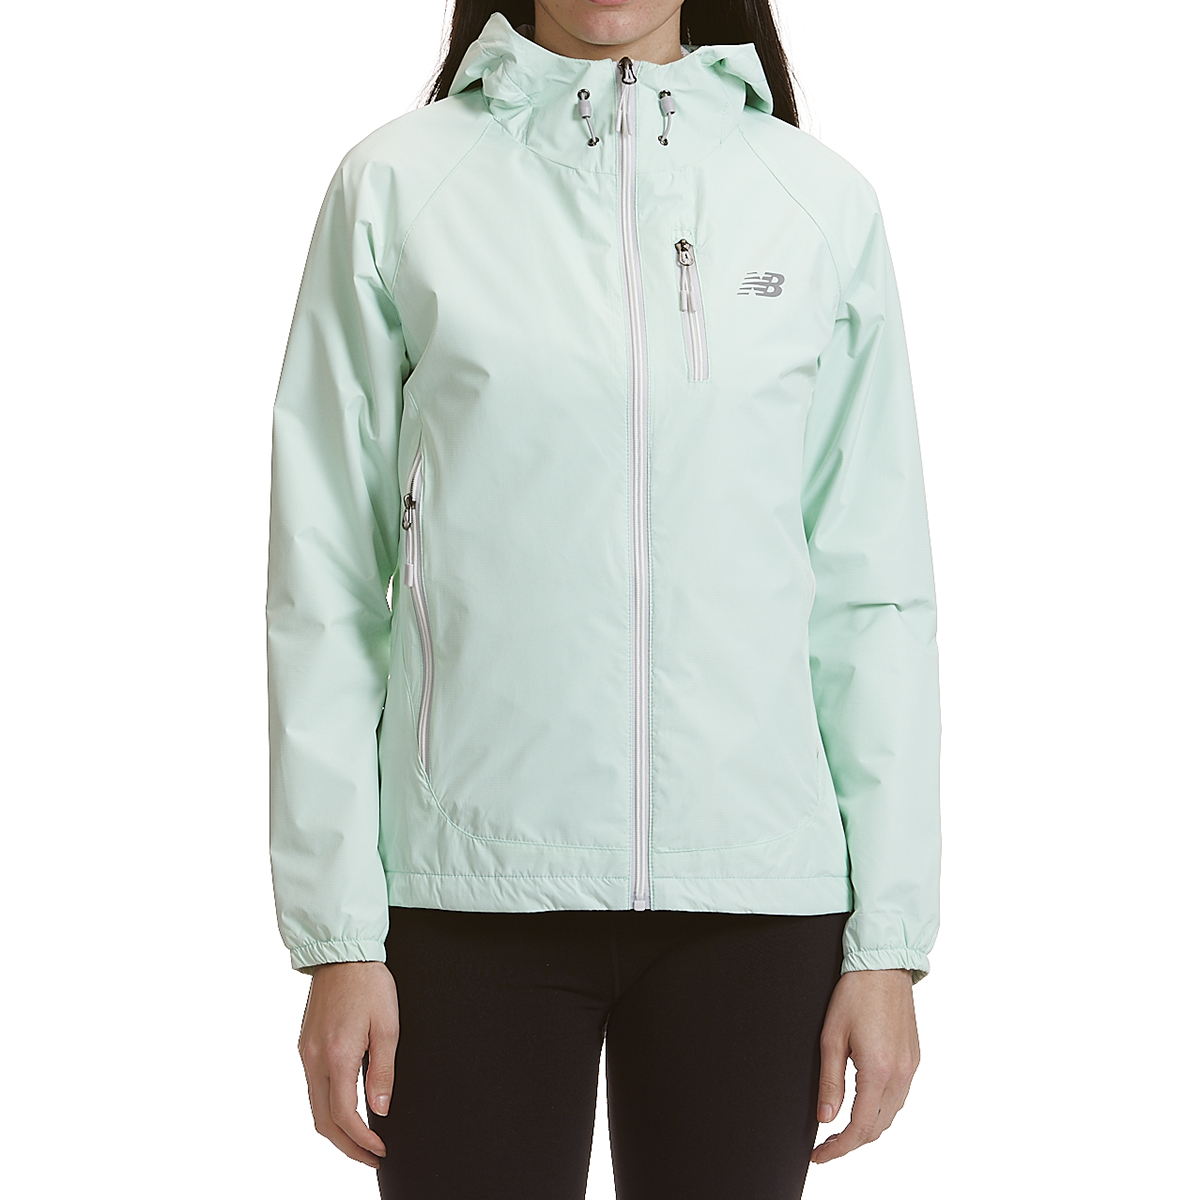 New Balance Women's Solid Dobby Hooded Jacket With Zipped Pockets - Blue, M